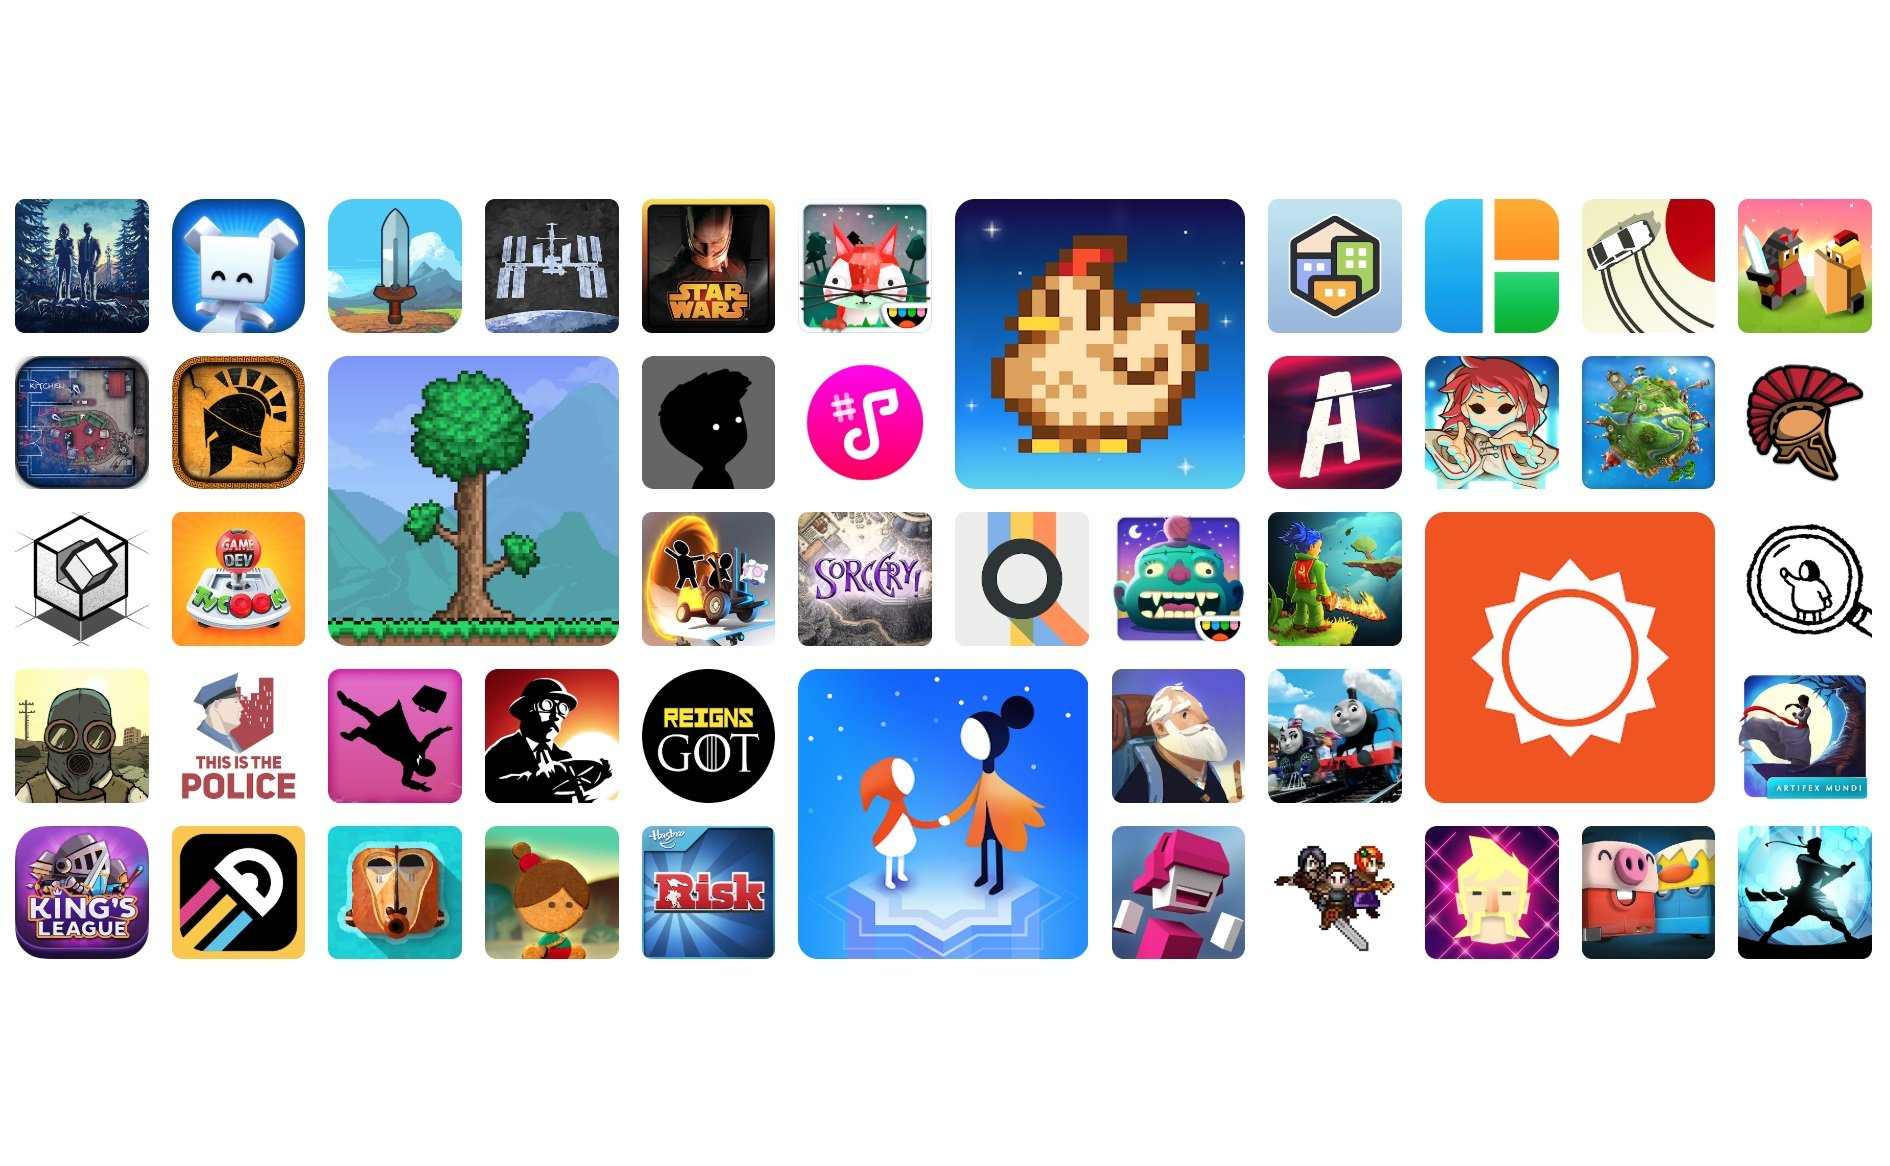 Below, we've listed all games and apps confirmed for Google Play Pass.